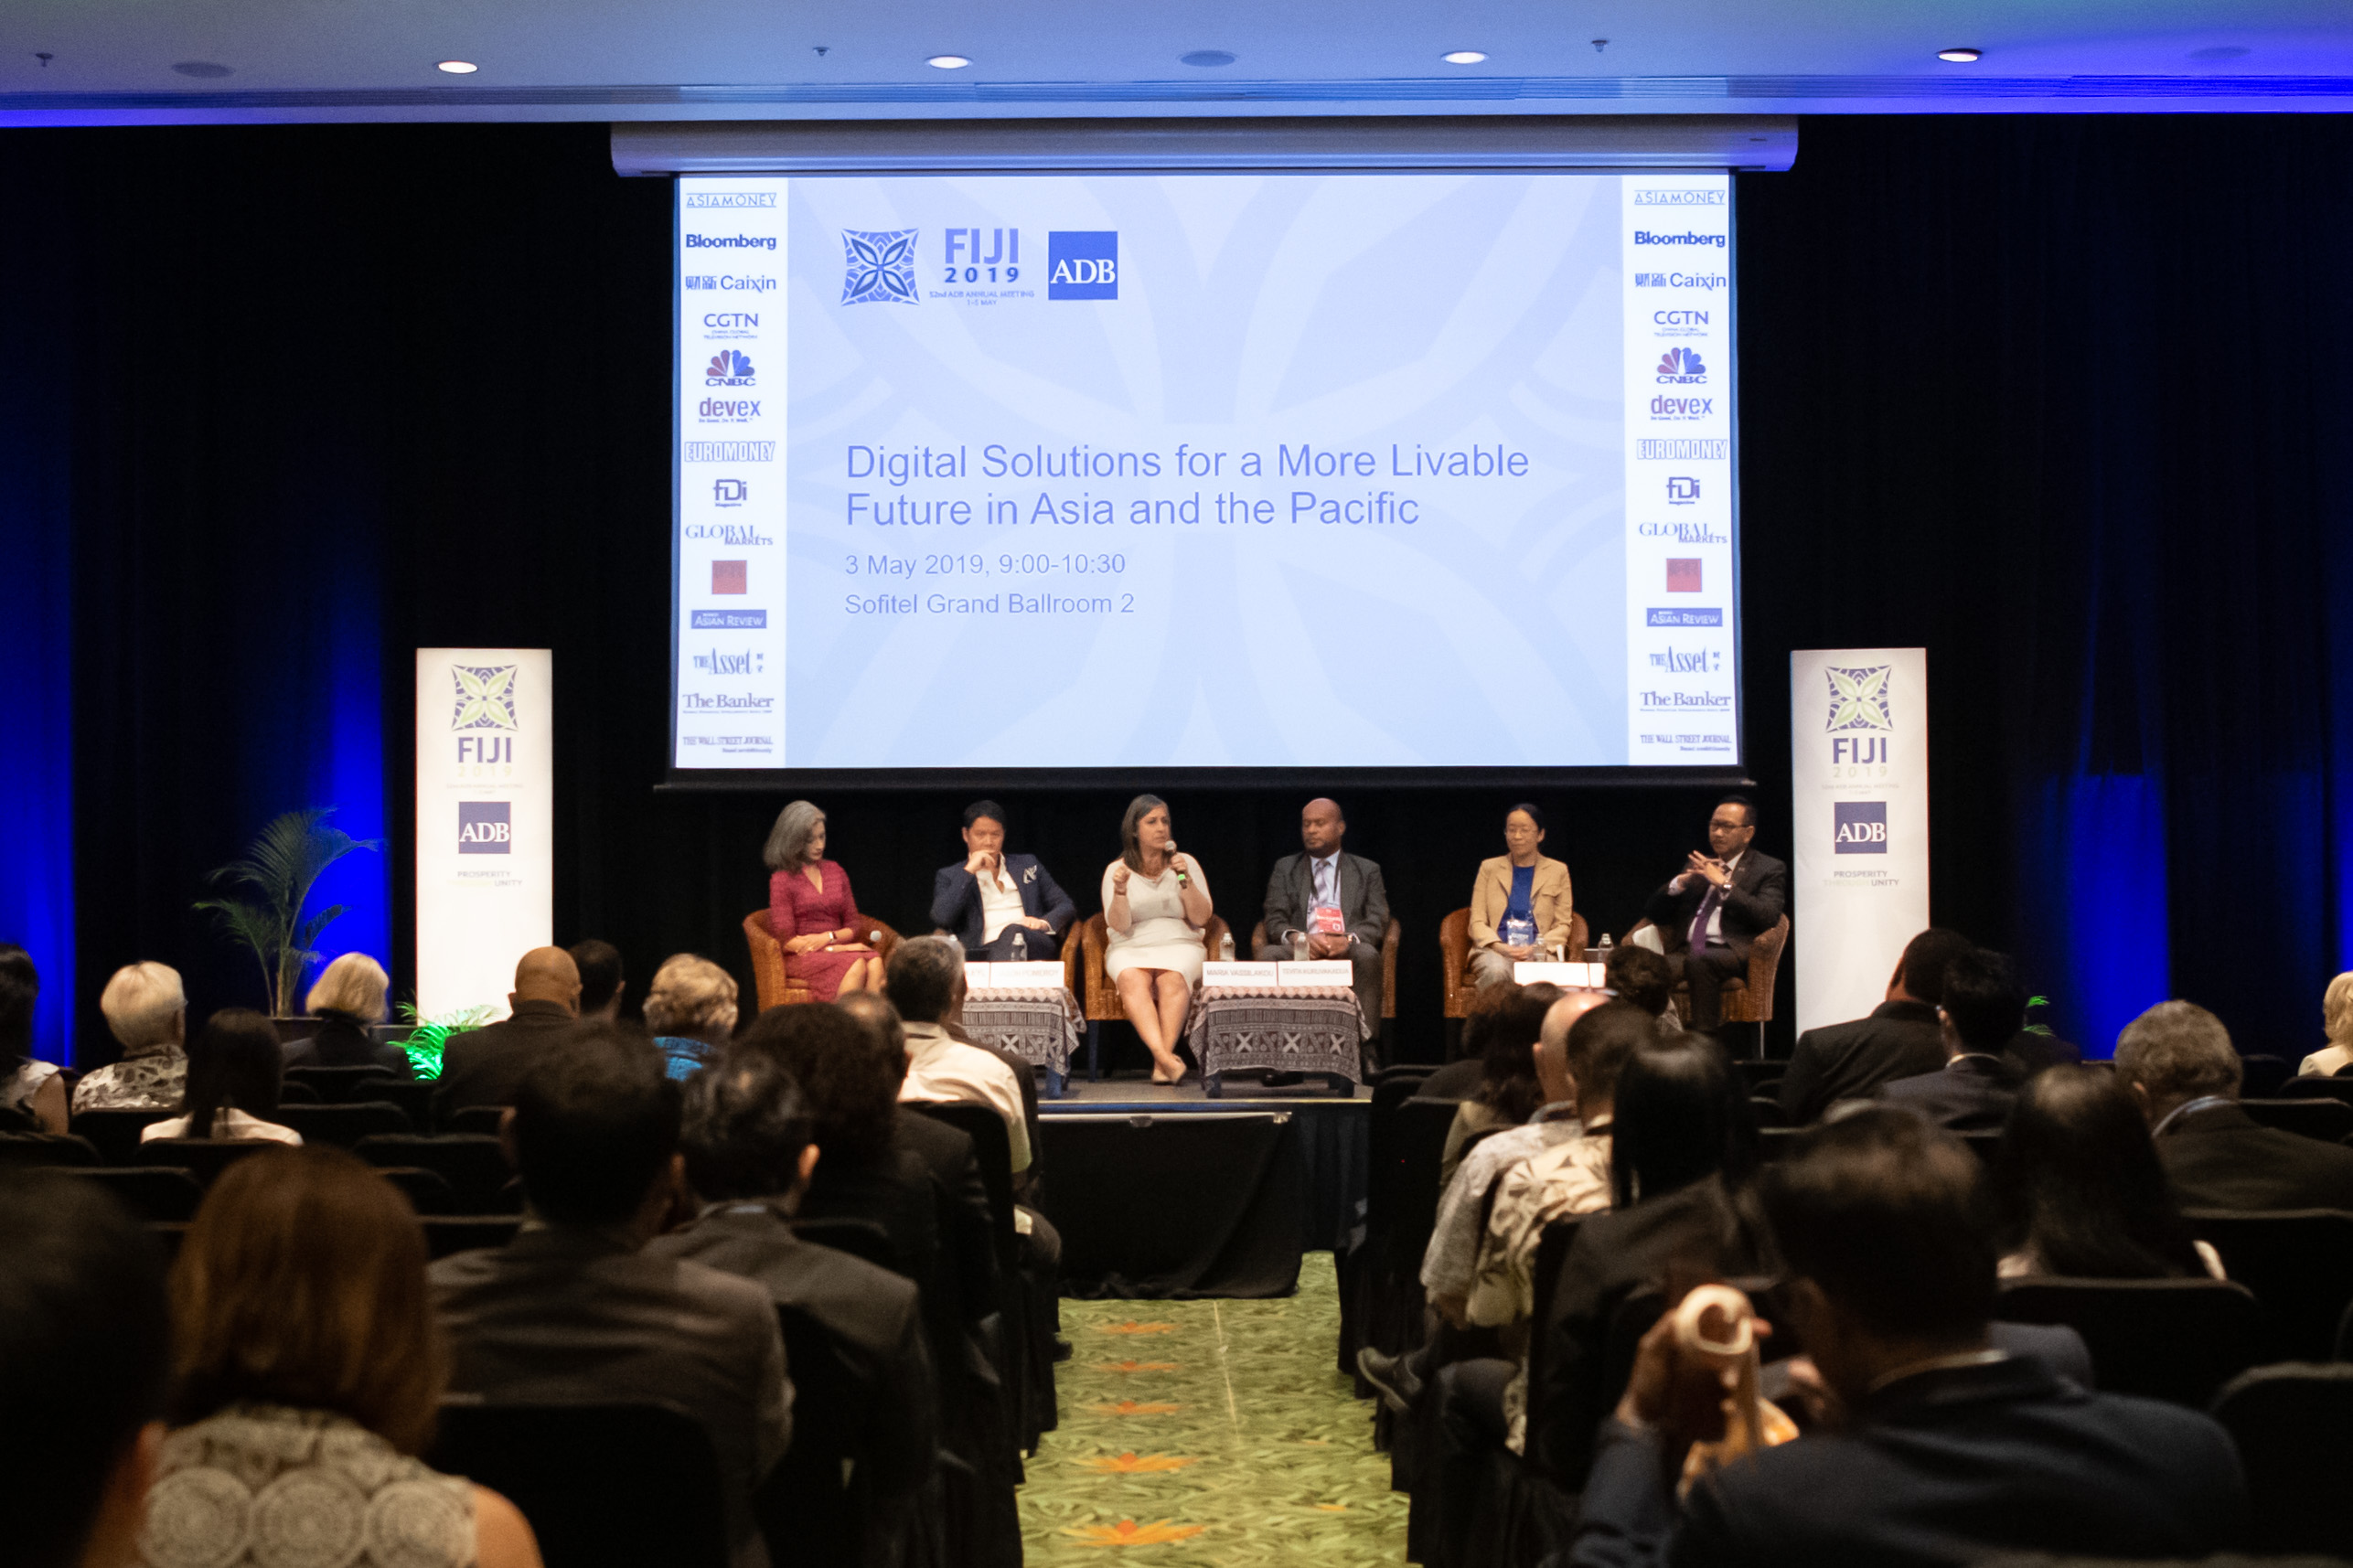 Digital Solutions for a More Livable Future in Asia and the Pacific